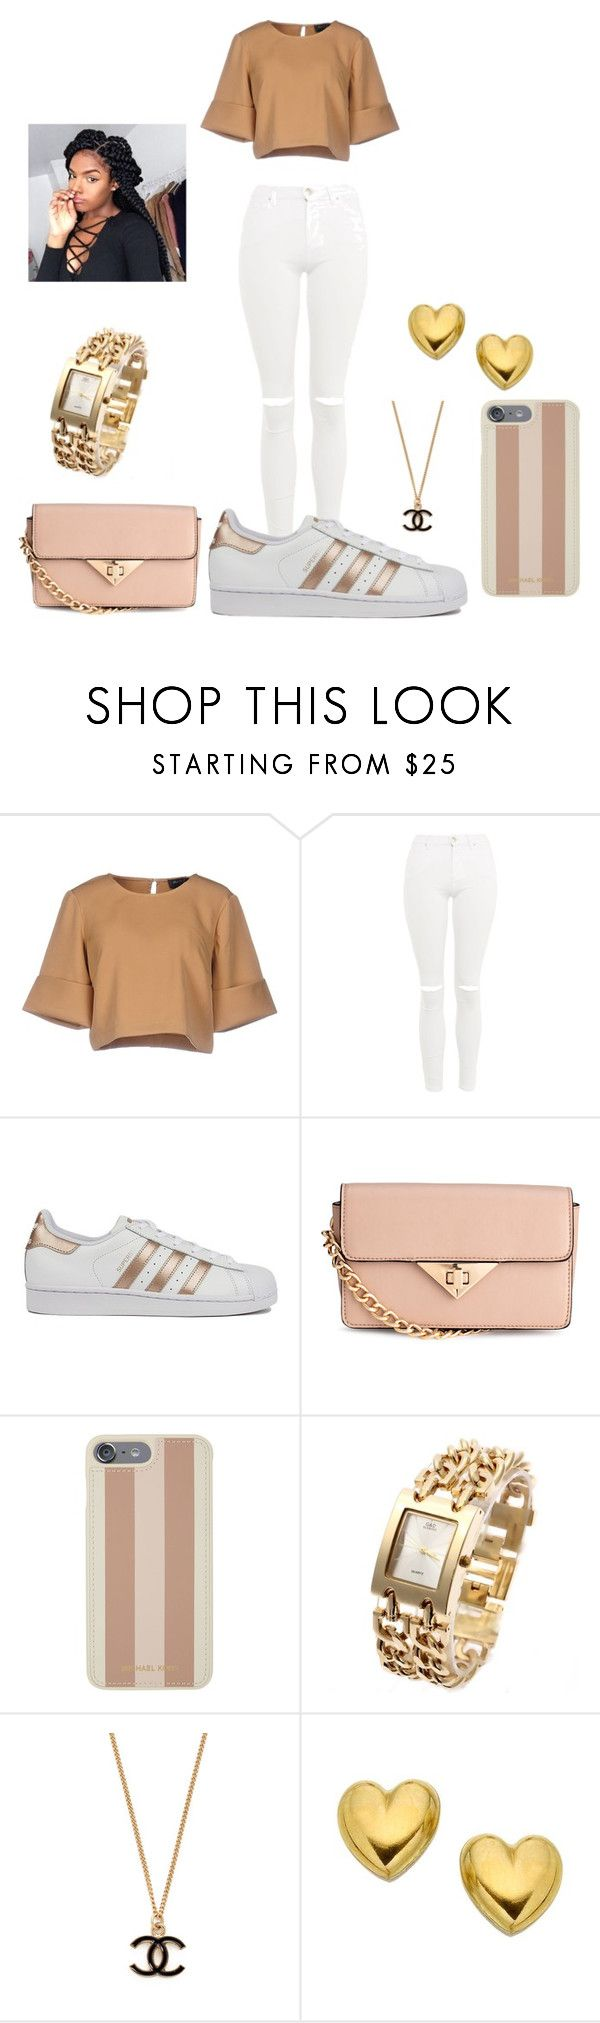 """""""slay"""" by malachiaewarrenwifeyjunnewarre on Polyvore featuring The Fifth Label, Topshop, adidas, H&M and Michael Kors"""